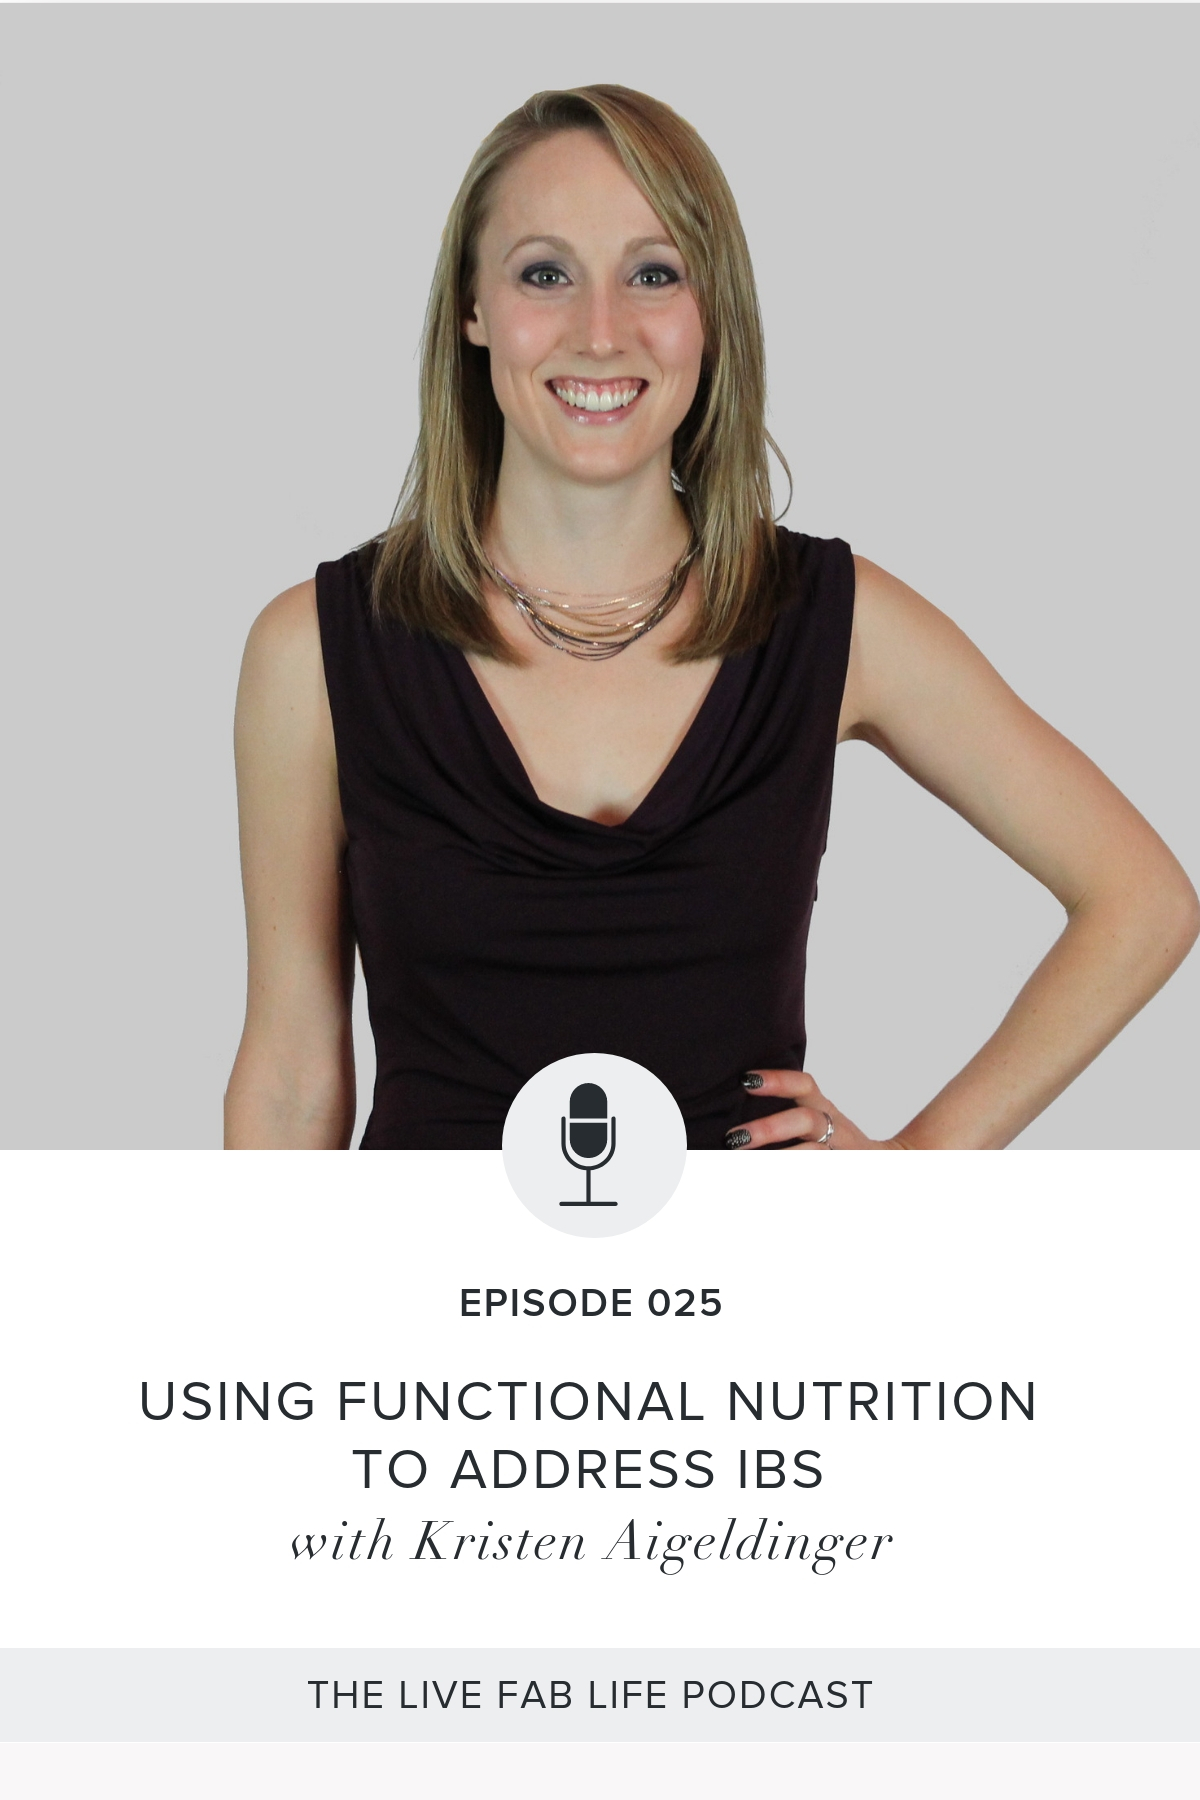 Using Functional Nutrition to Address IBS